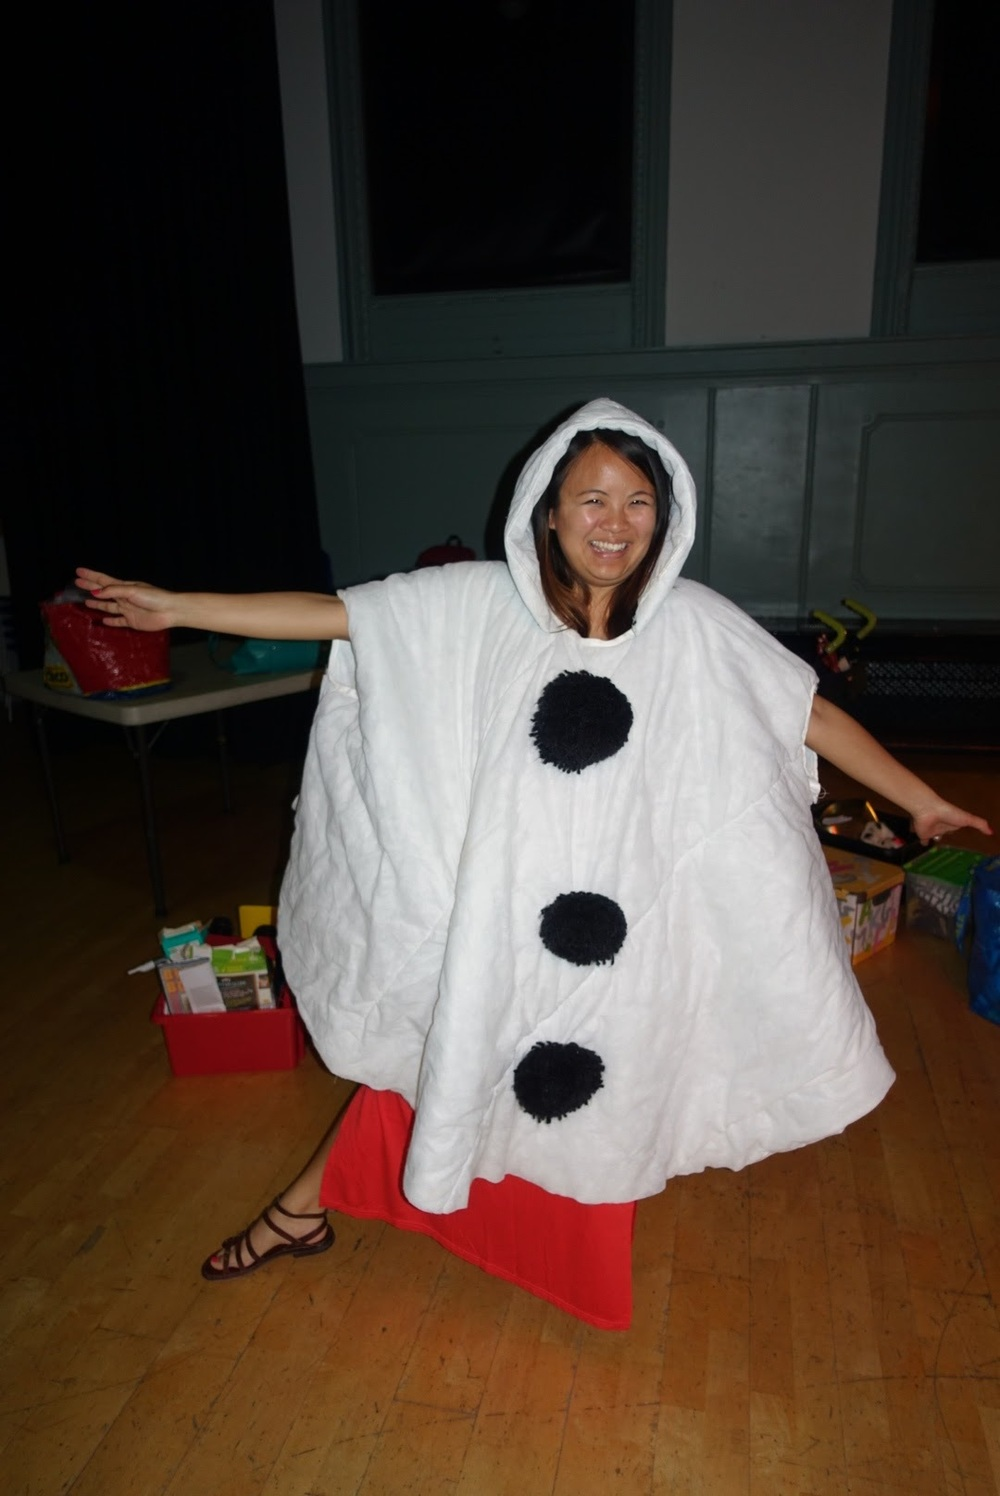 Diana, founder of Hampstead Mums, as Olaf